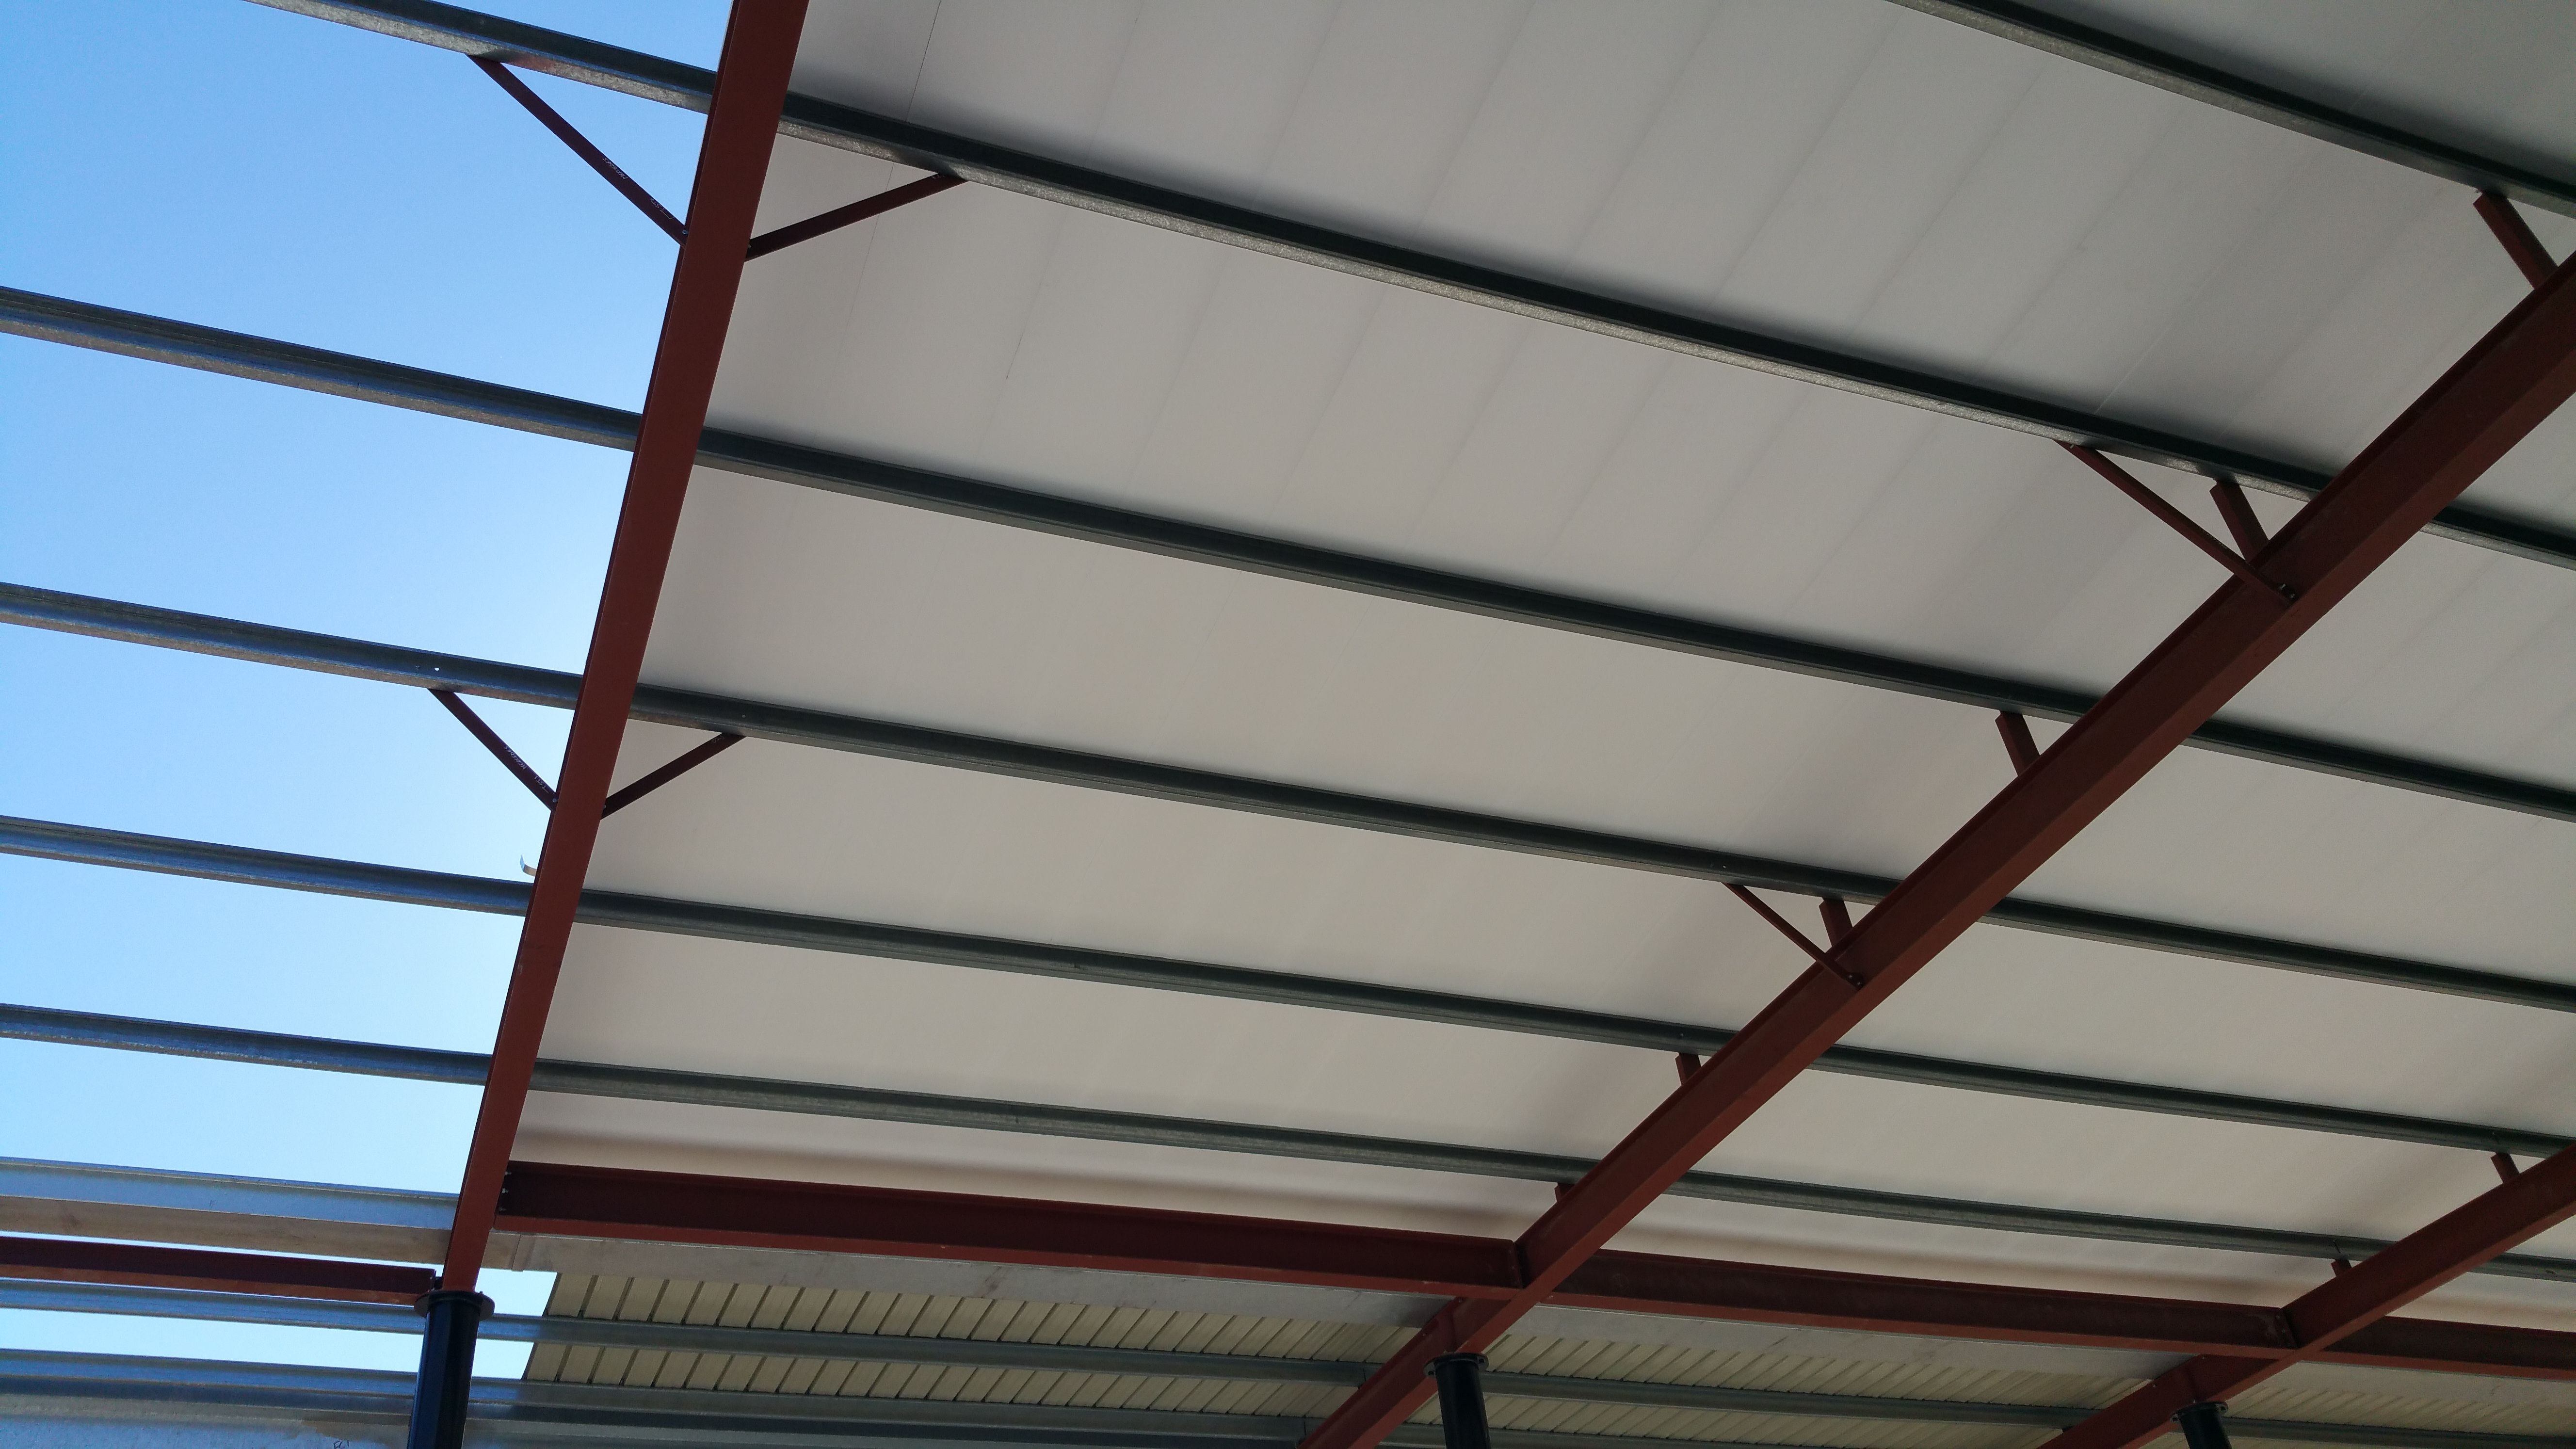 Over Purlin Insulation In 2020 Roof Insulation Industrial Buildings Roofing Sheets